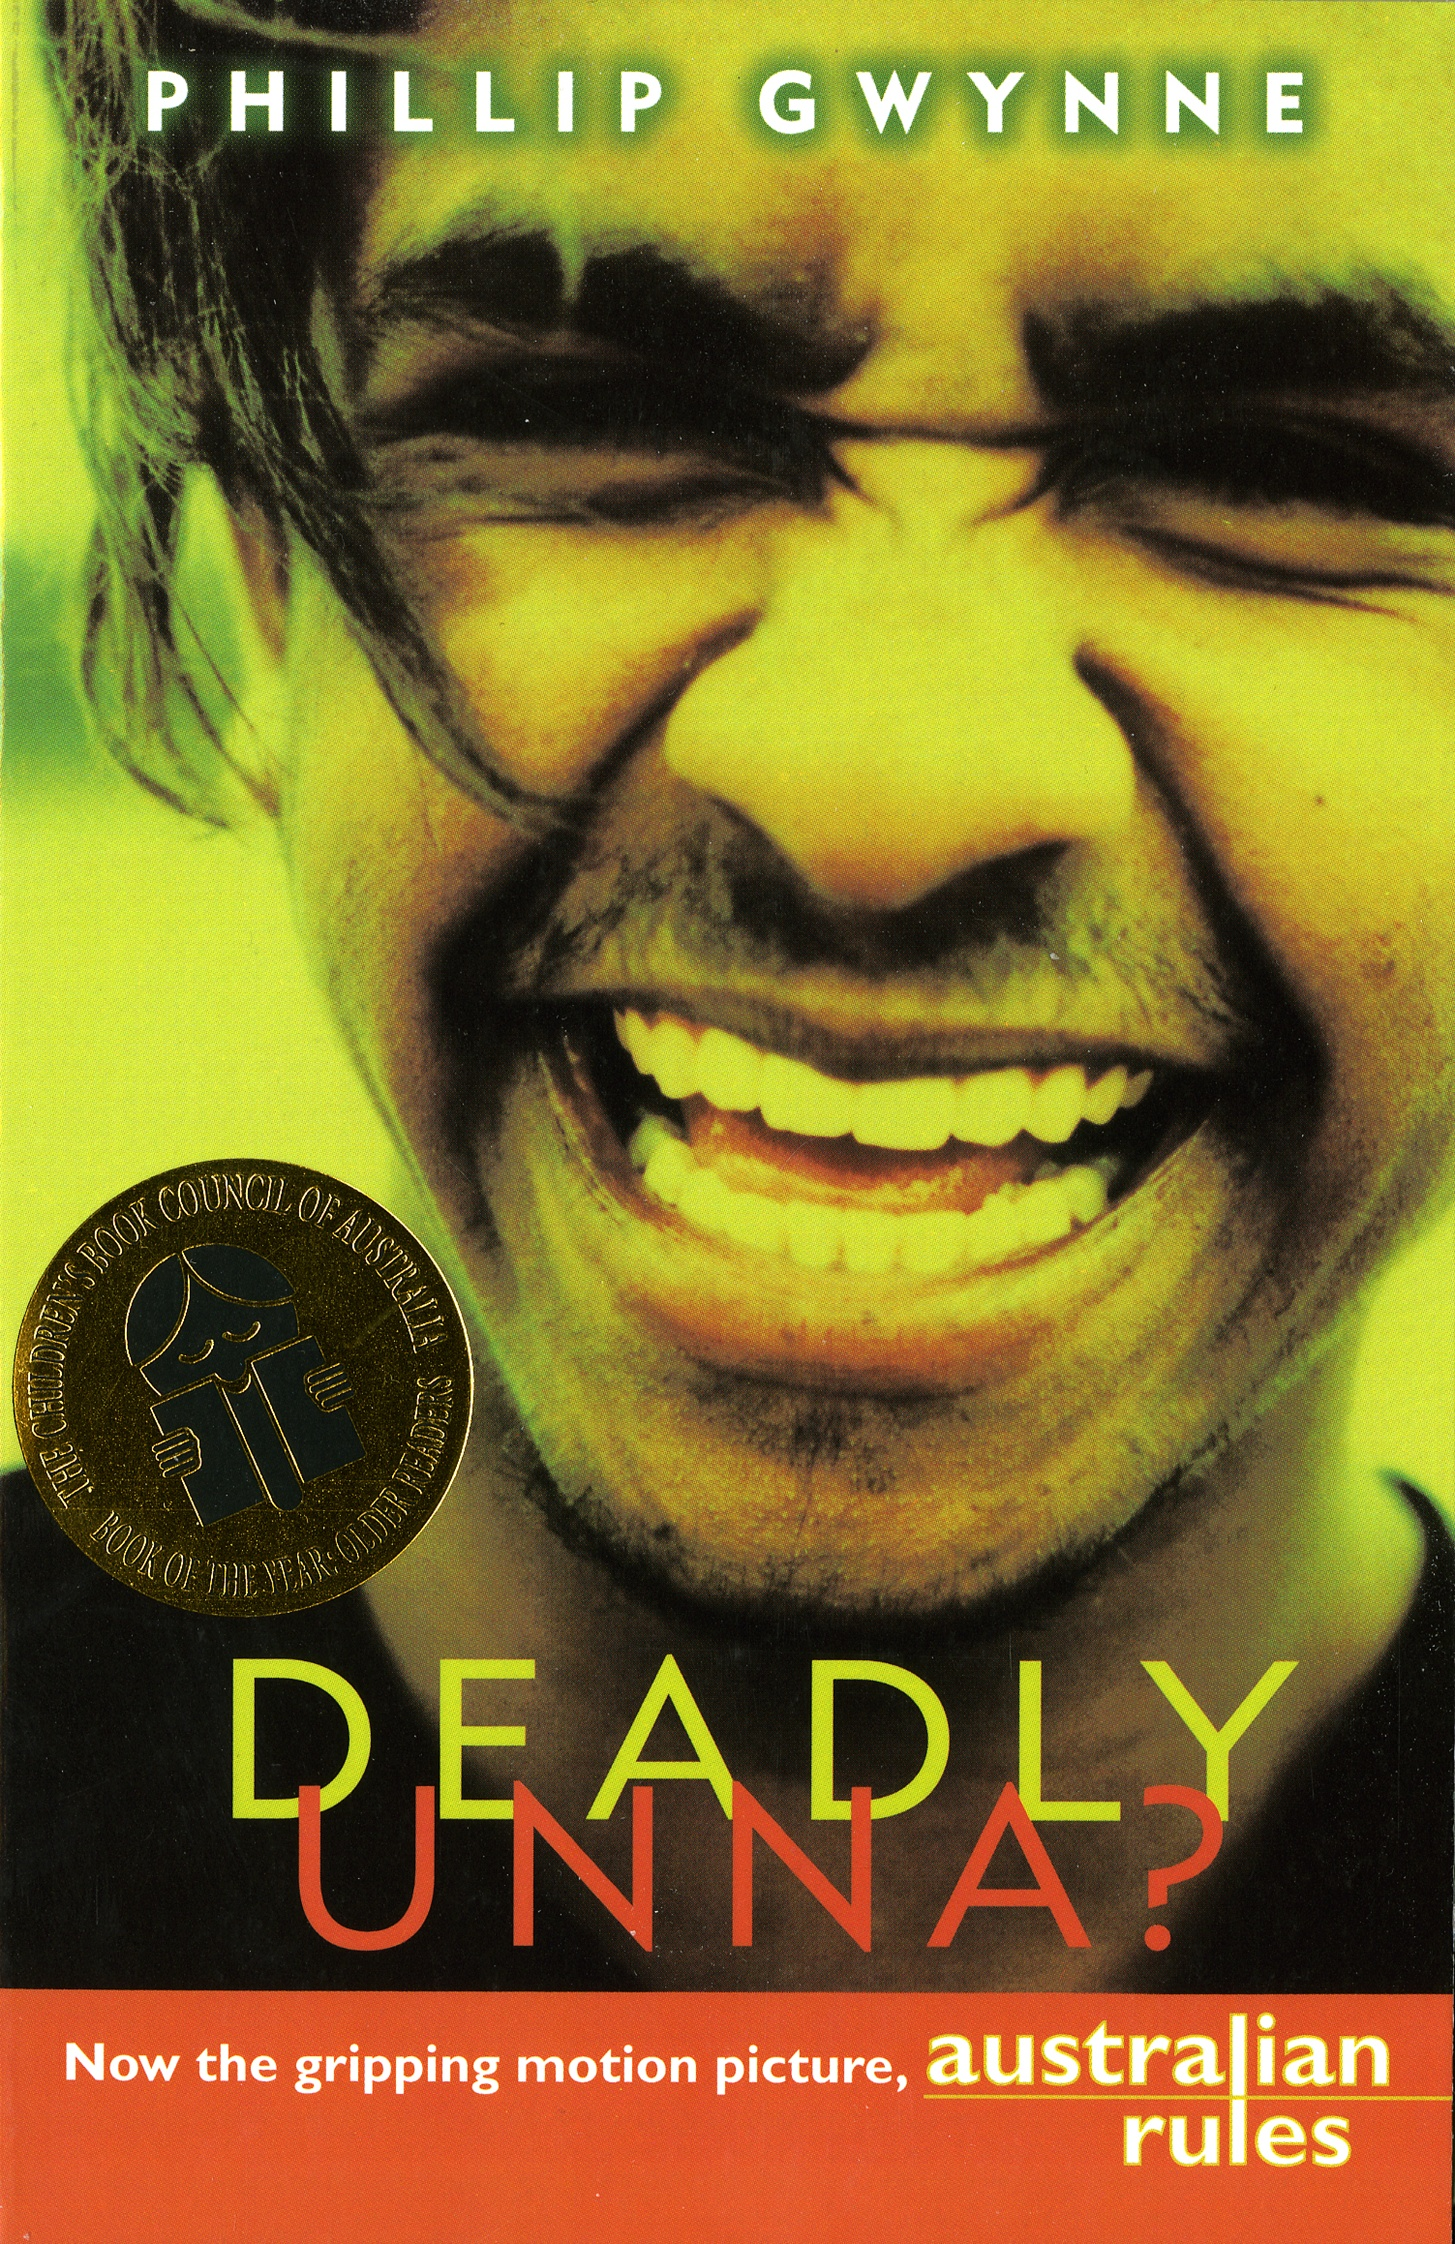 tomorrow when the war began reading book cover image for deadly unna